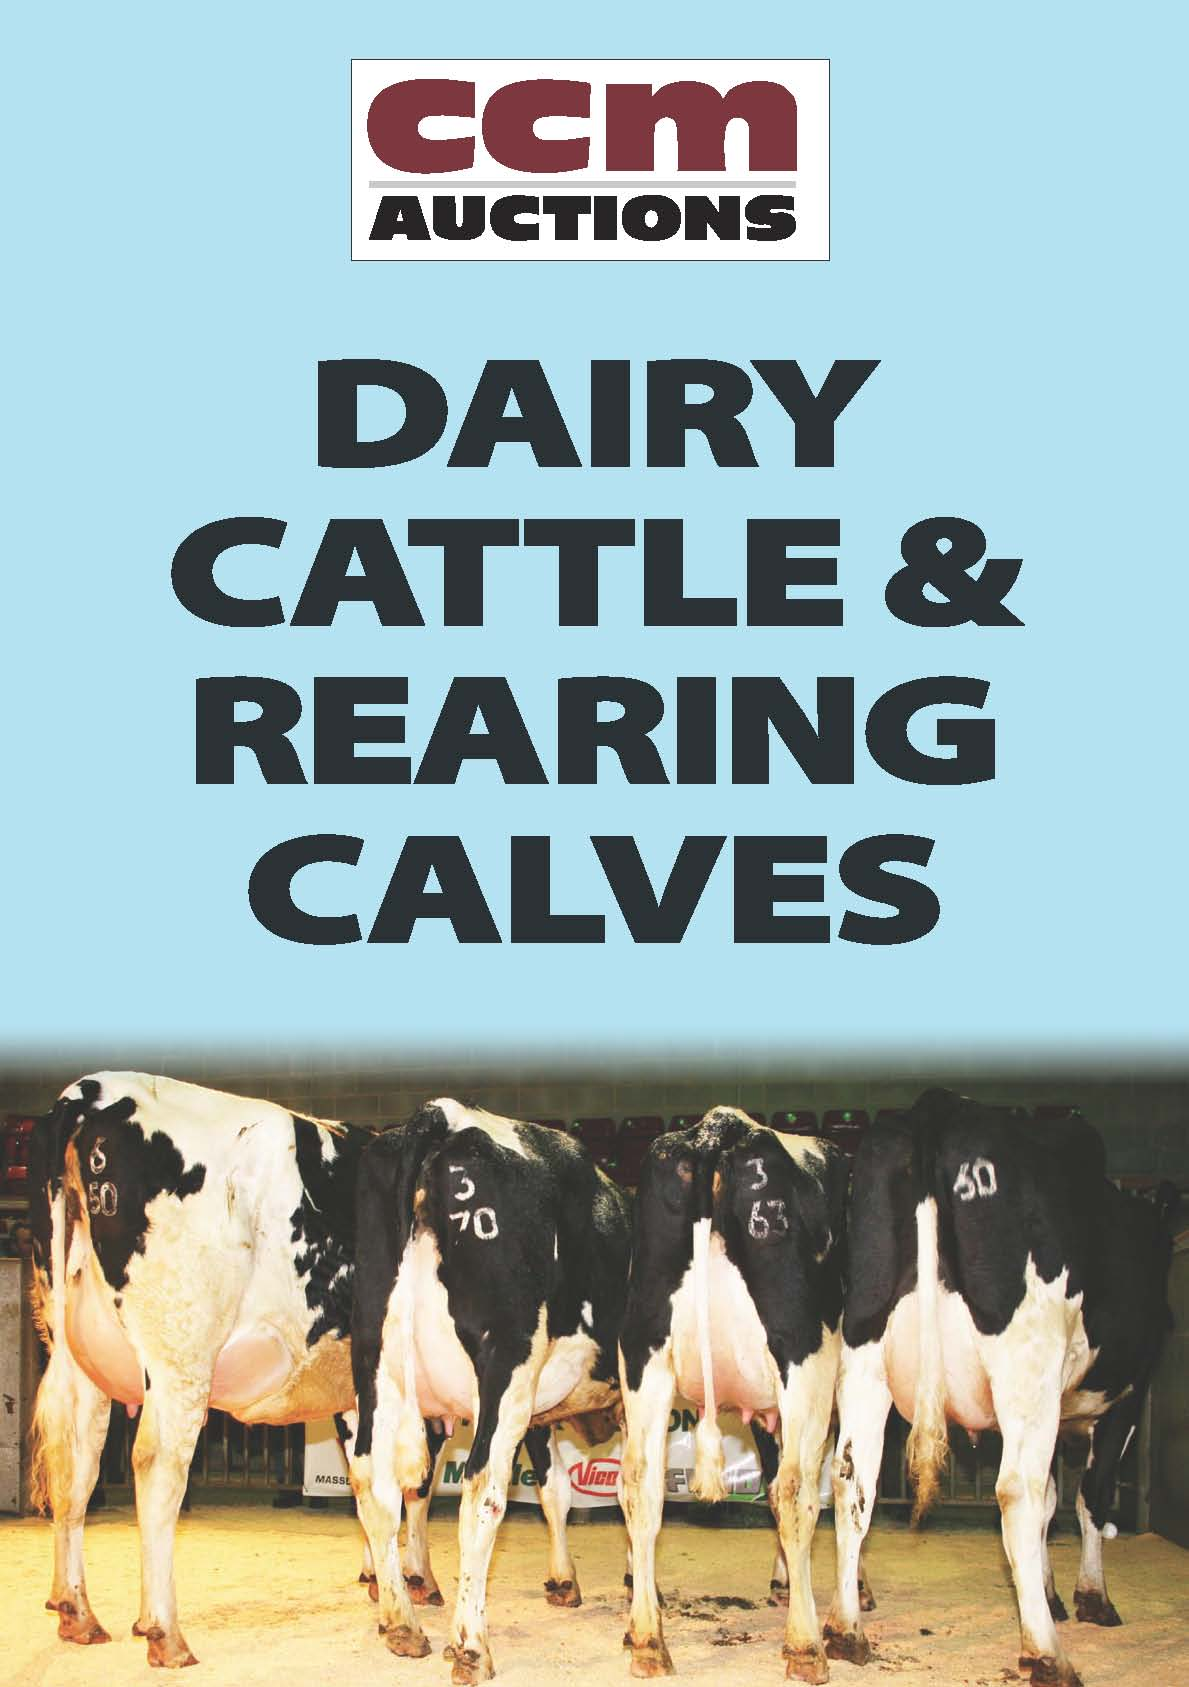 CALF SHOW - MONDAY 19TH NOVEMBER 2015